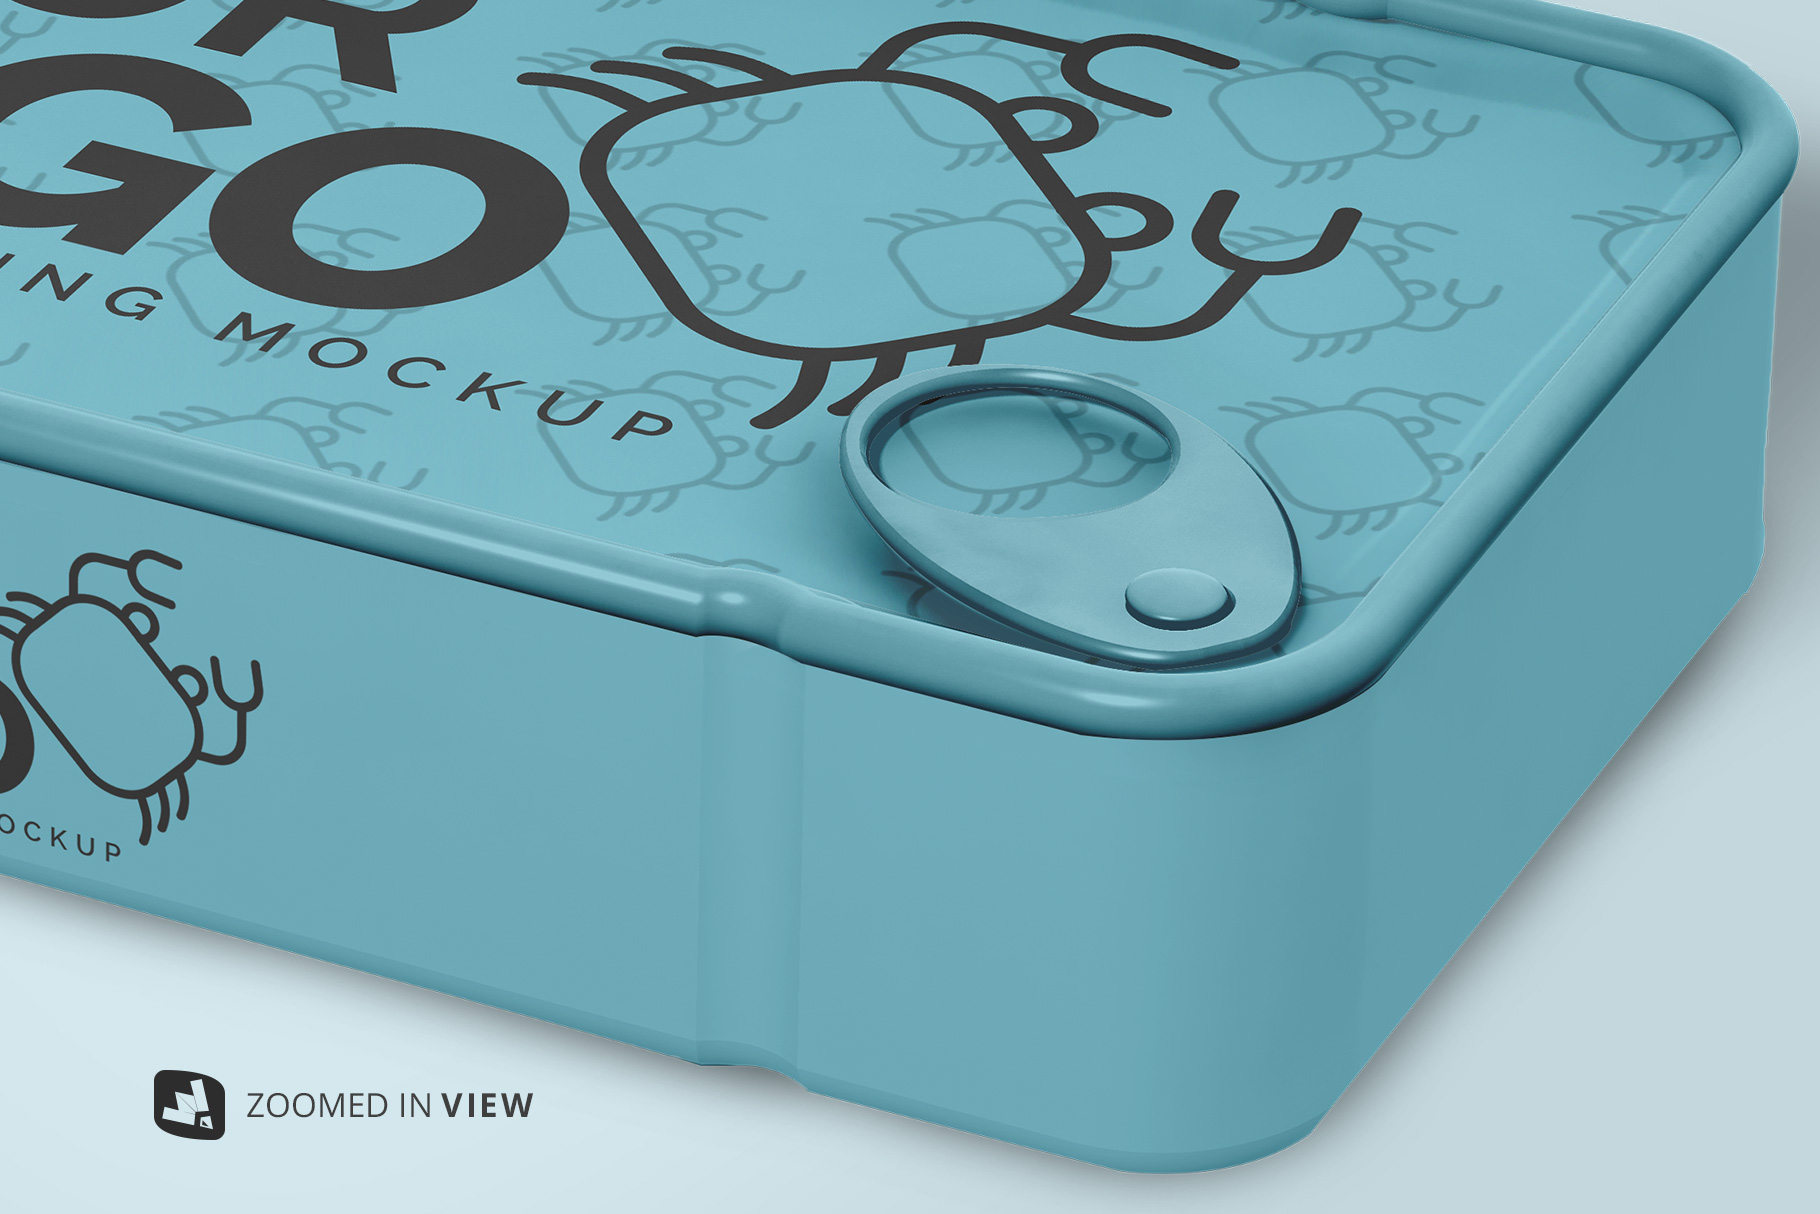 zoomed in image of the canned food packaging mockup